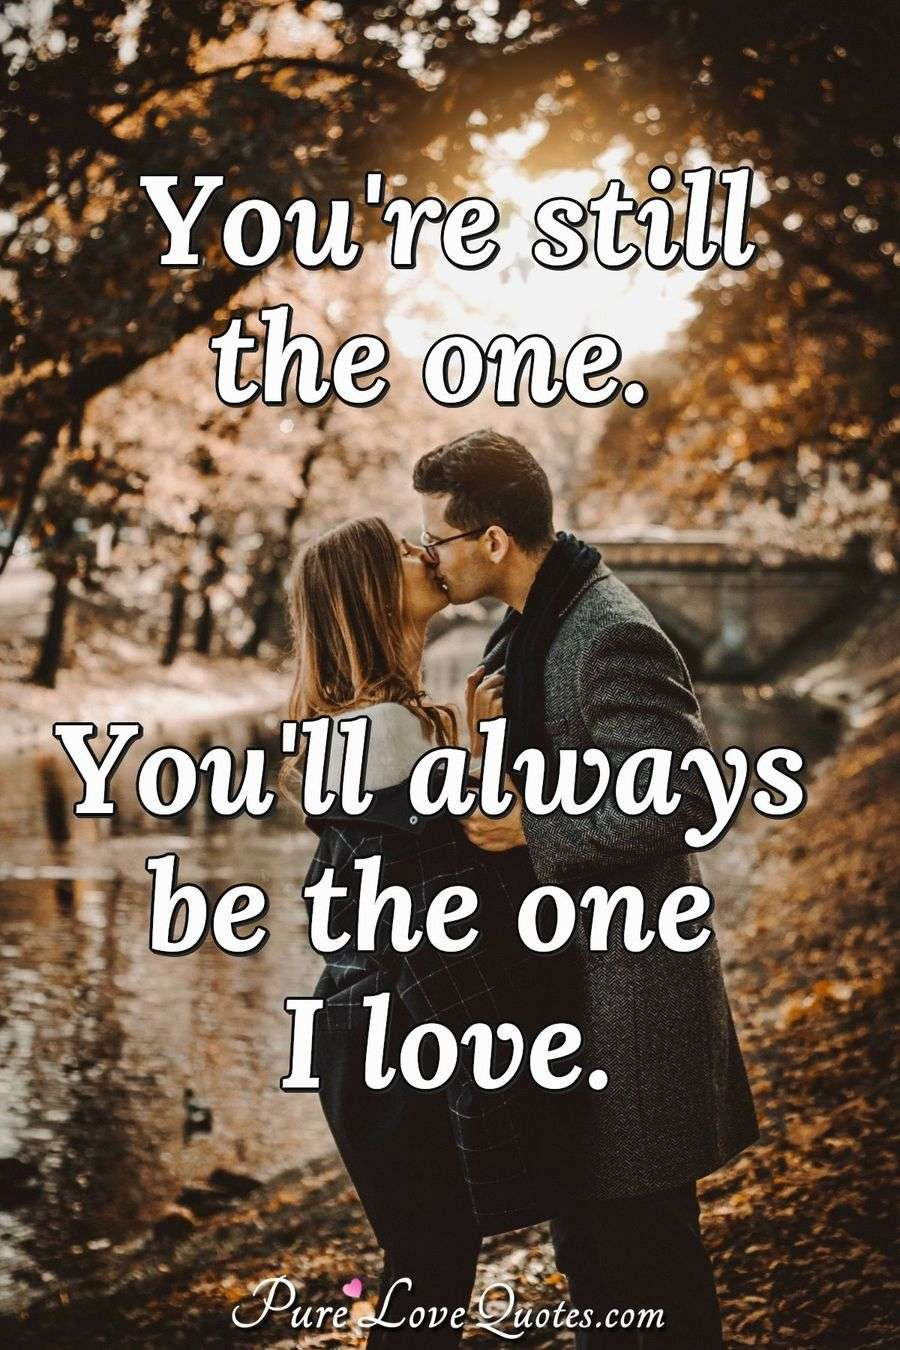 You're still the one. You'll always be the one I love. - Anonymous